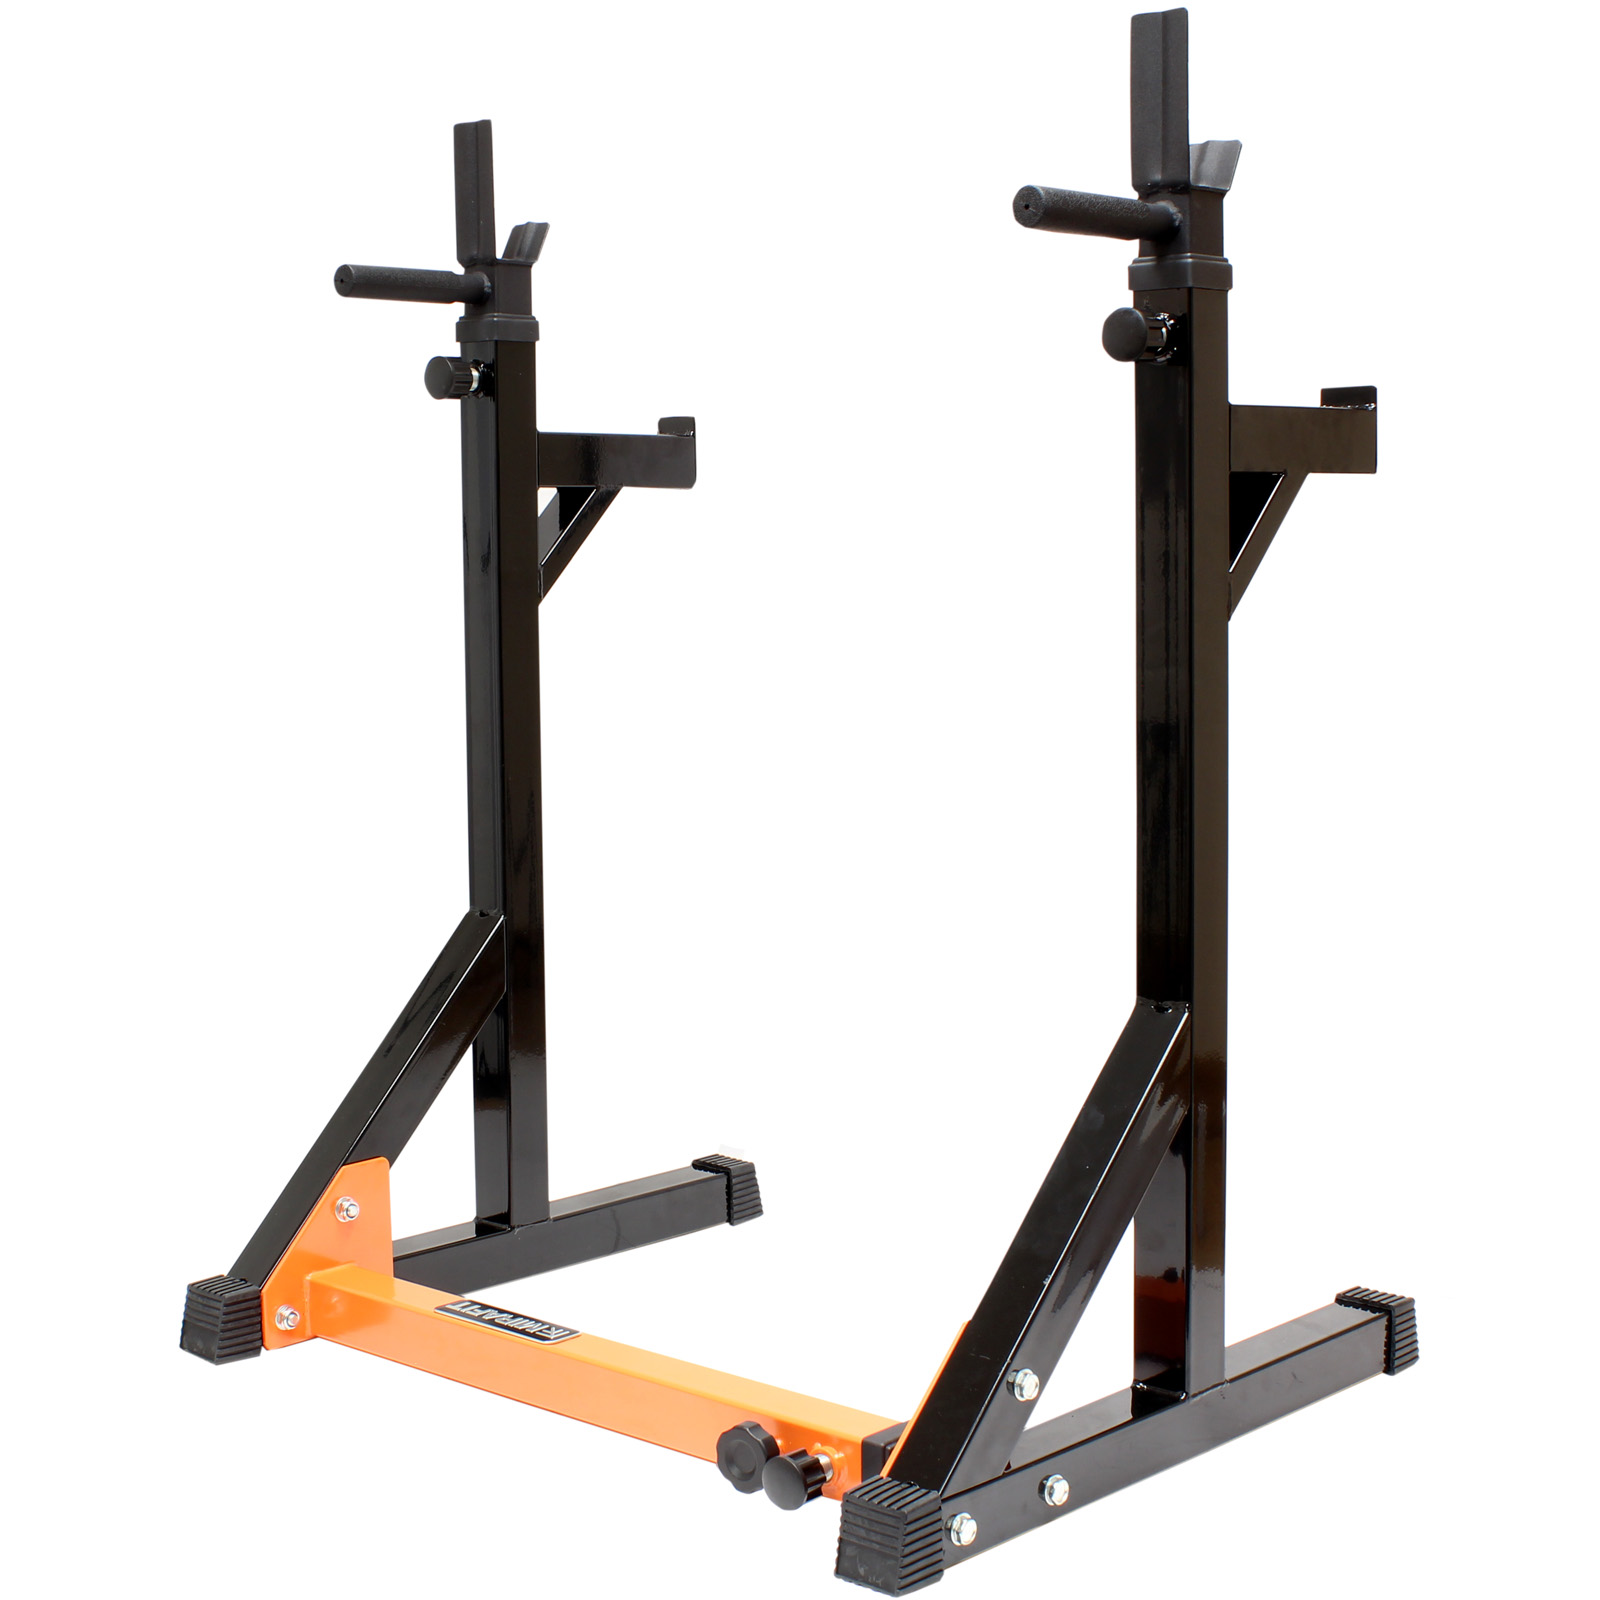 Mirafit fully adjustable squat dip rack gym weight for A squat rack